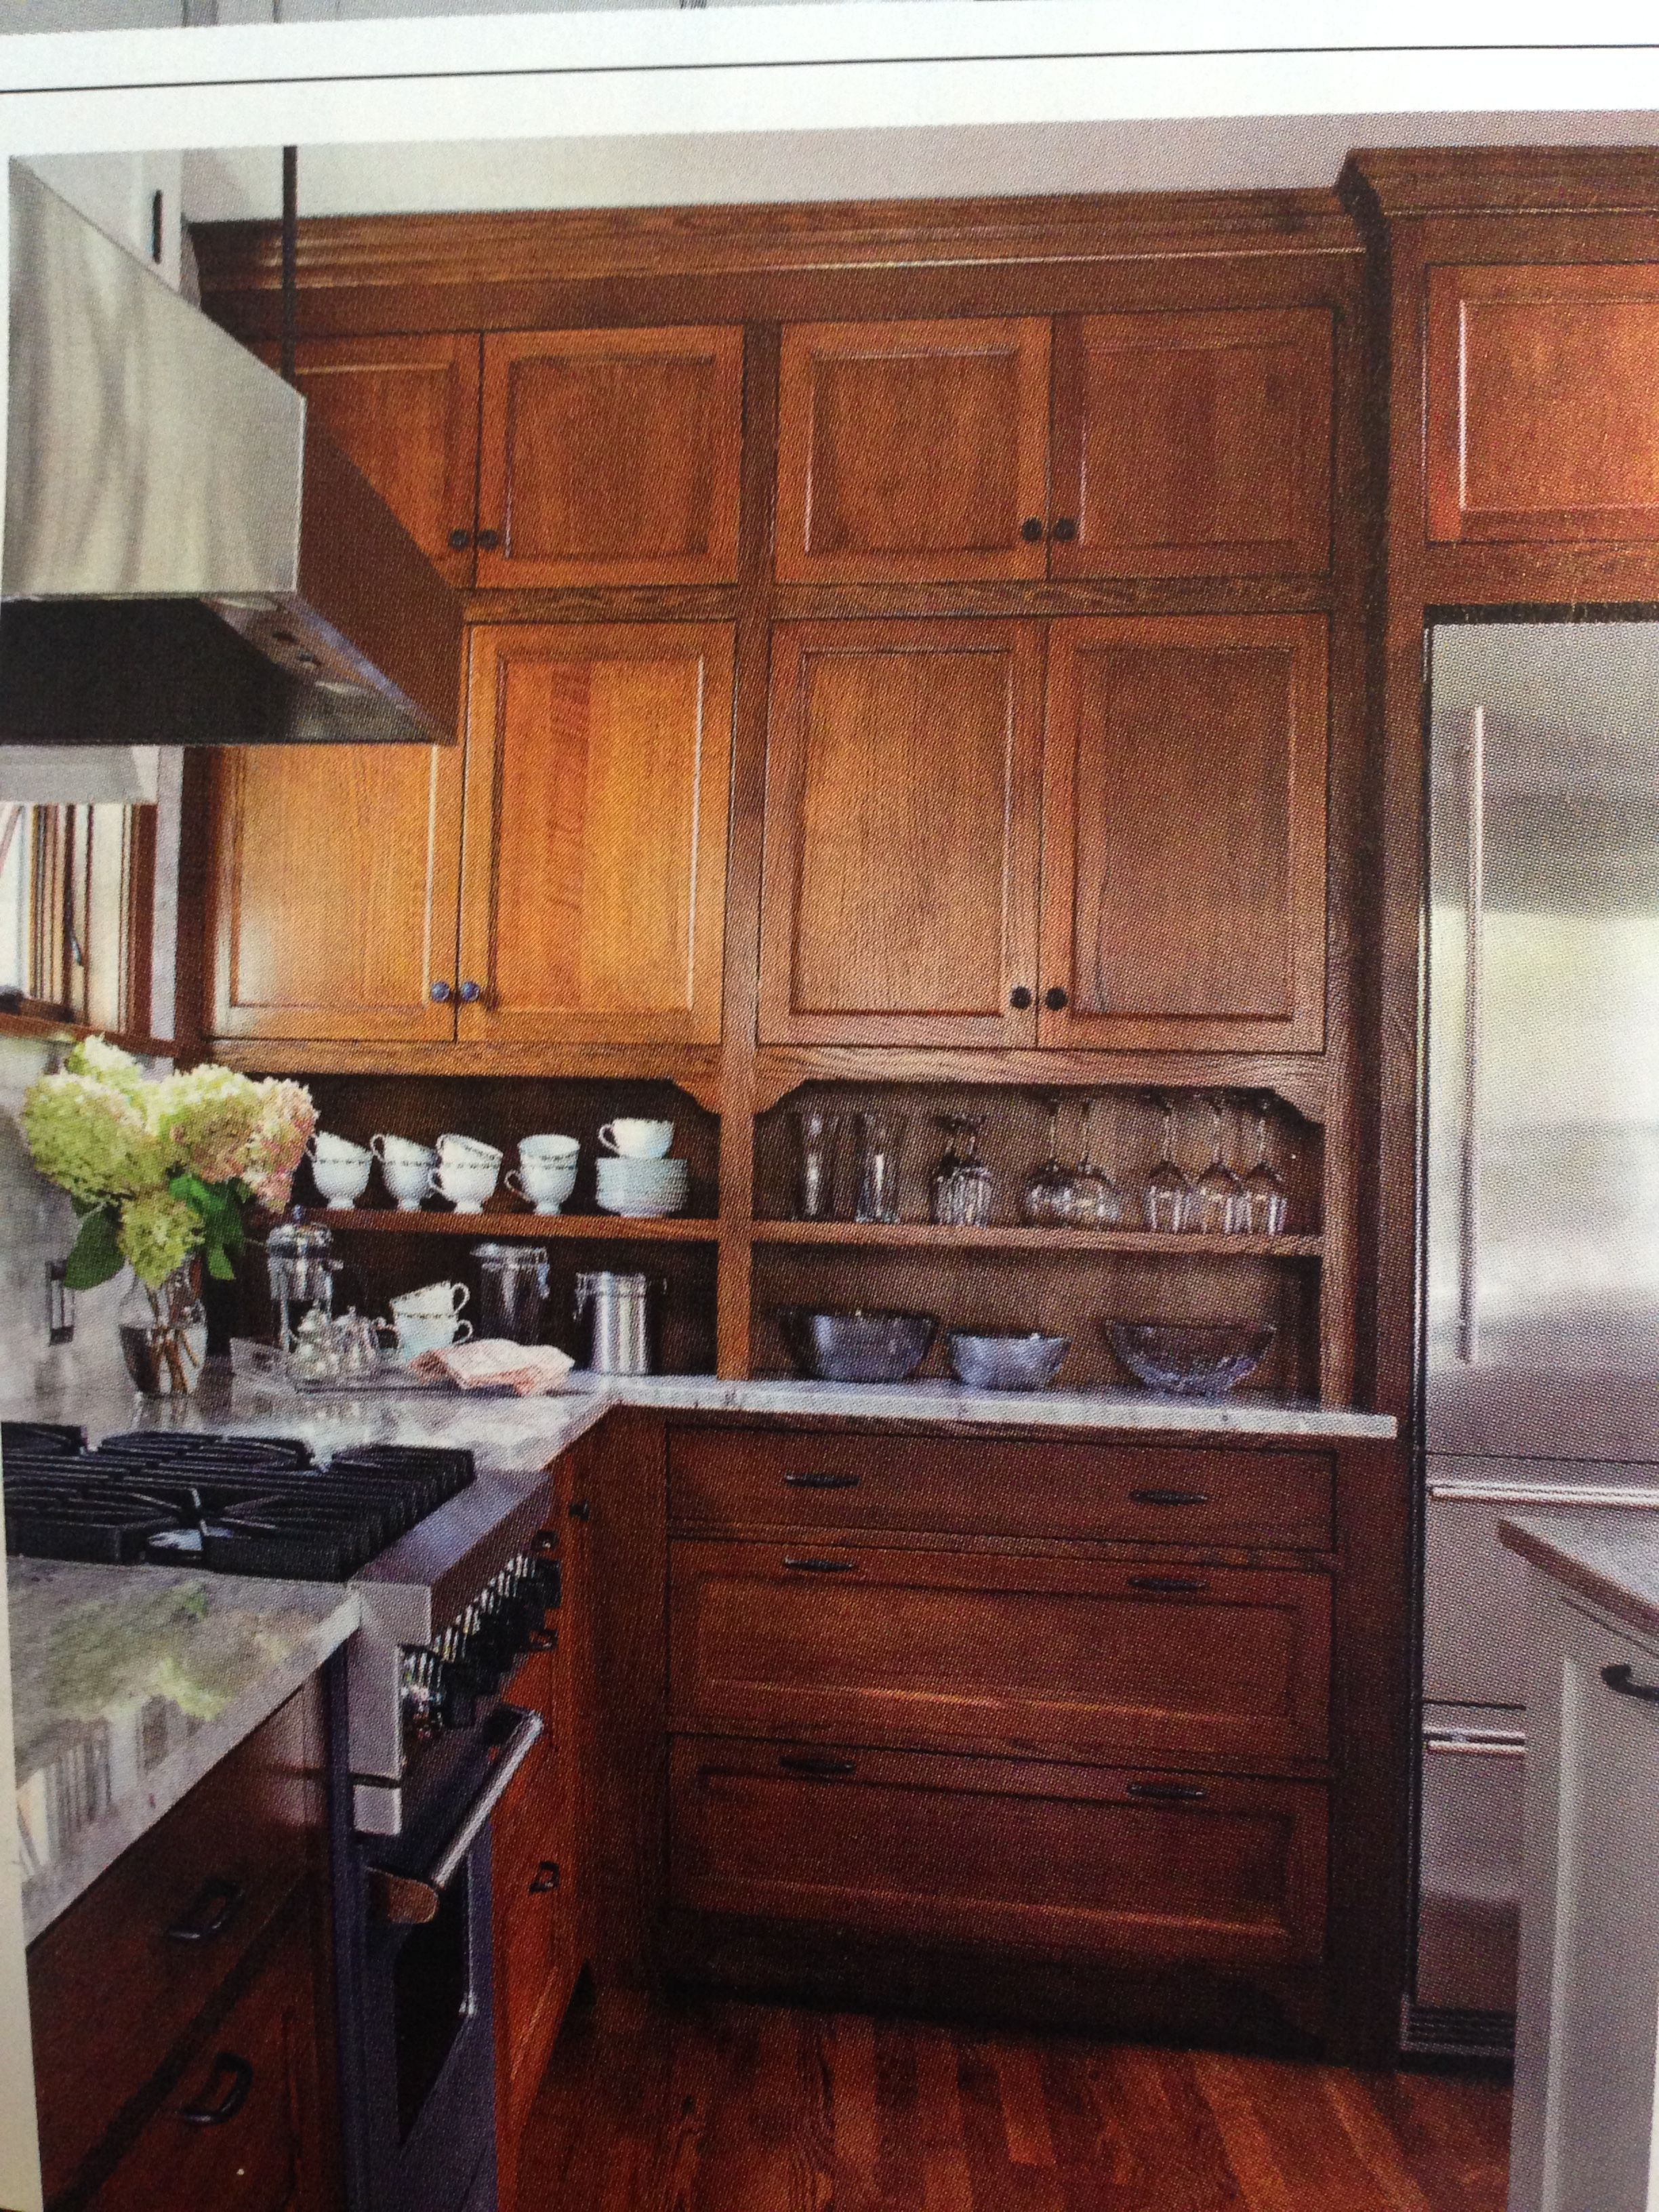 Stained Wood Cabinet Kitchen I Like The Extra Shelf Between The Countertop And Cupboards Bungalow Kitchen Wood Kitchen Cabinets Home Kitchens